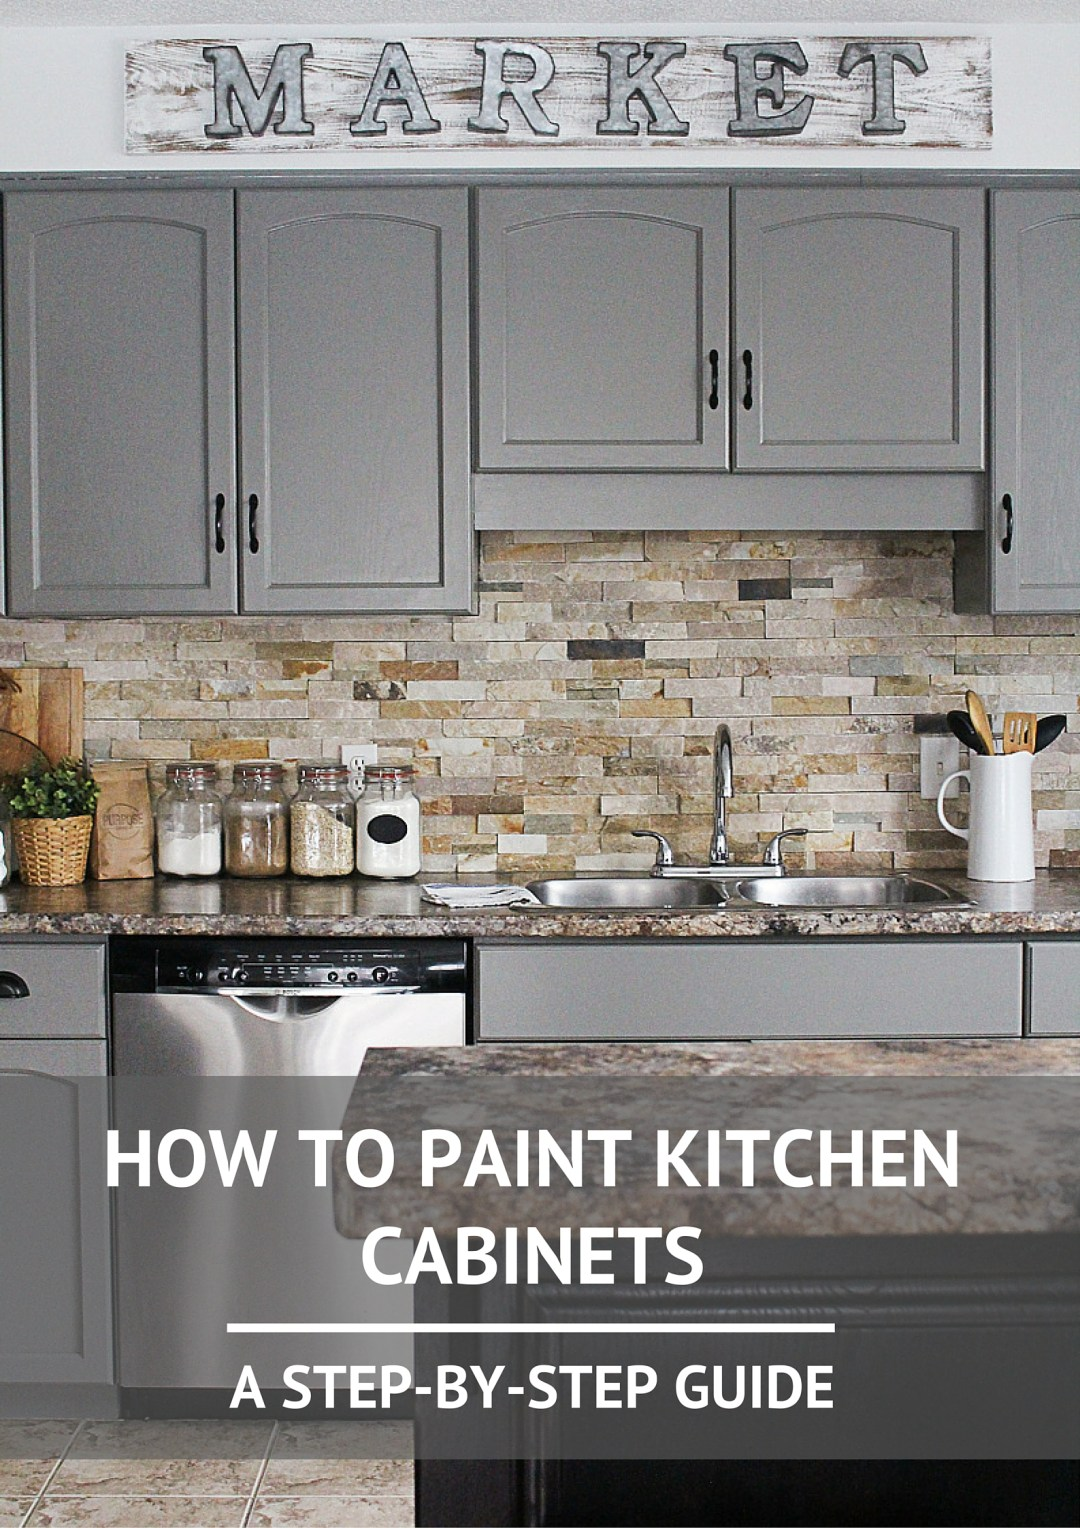 What Type Of Paint For Kitchen Cabinets How to Paint Kitchen Cabinets